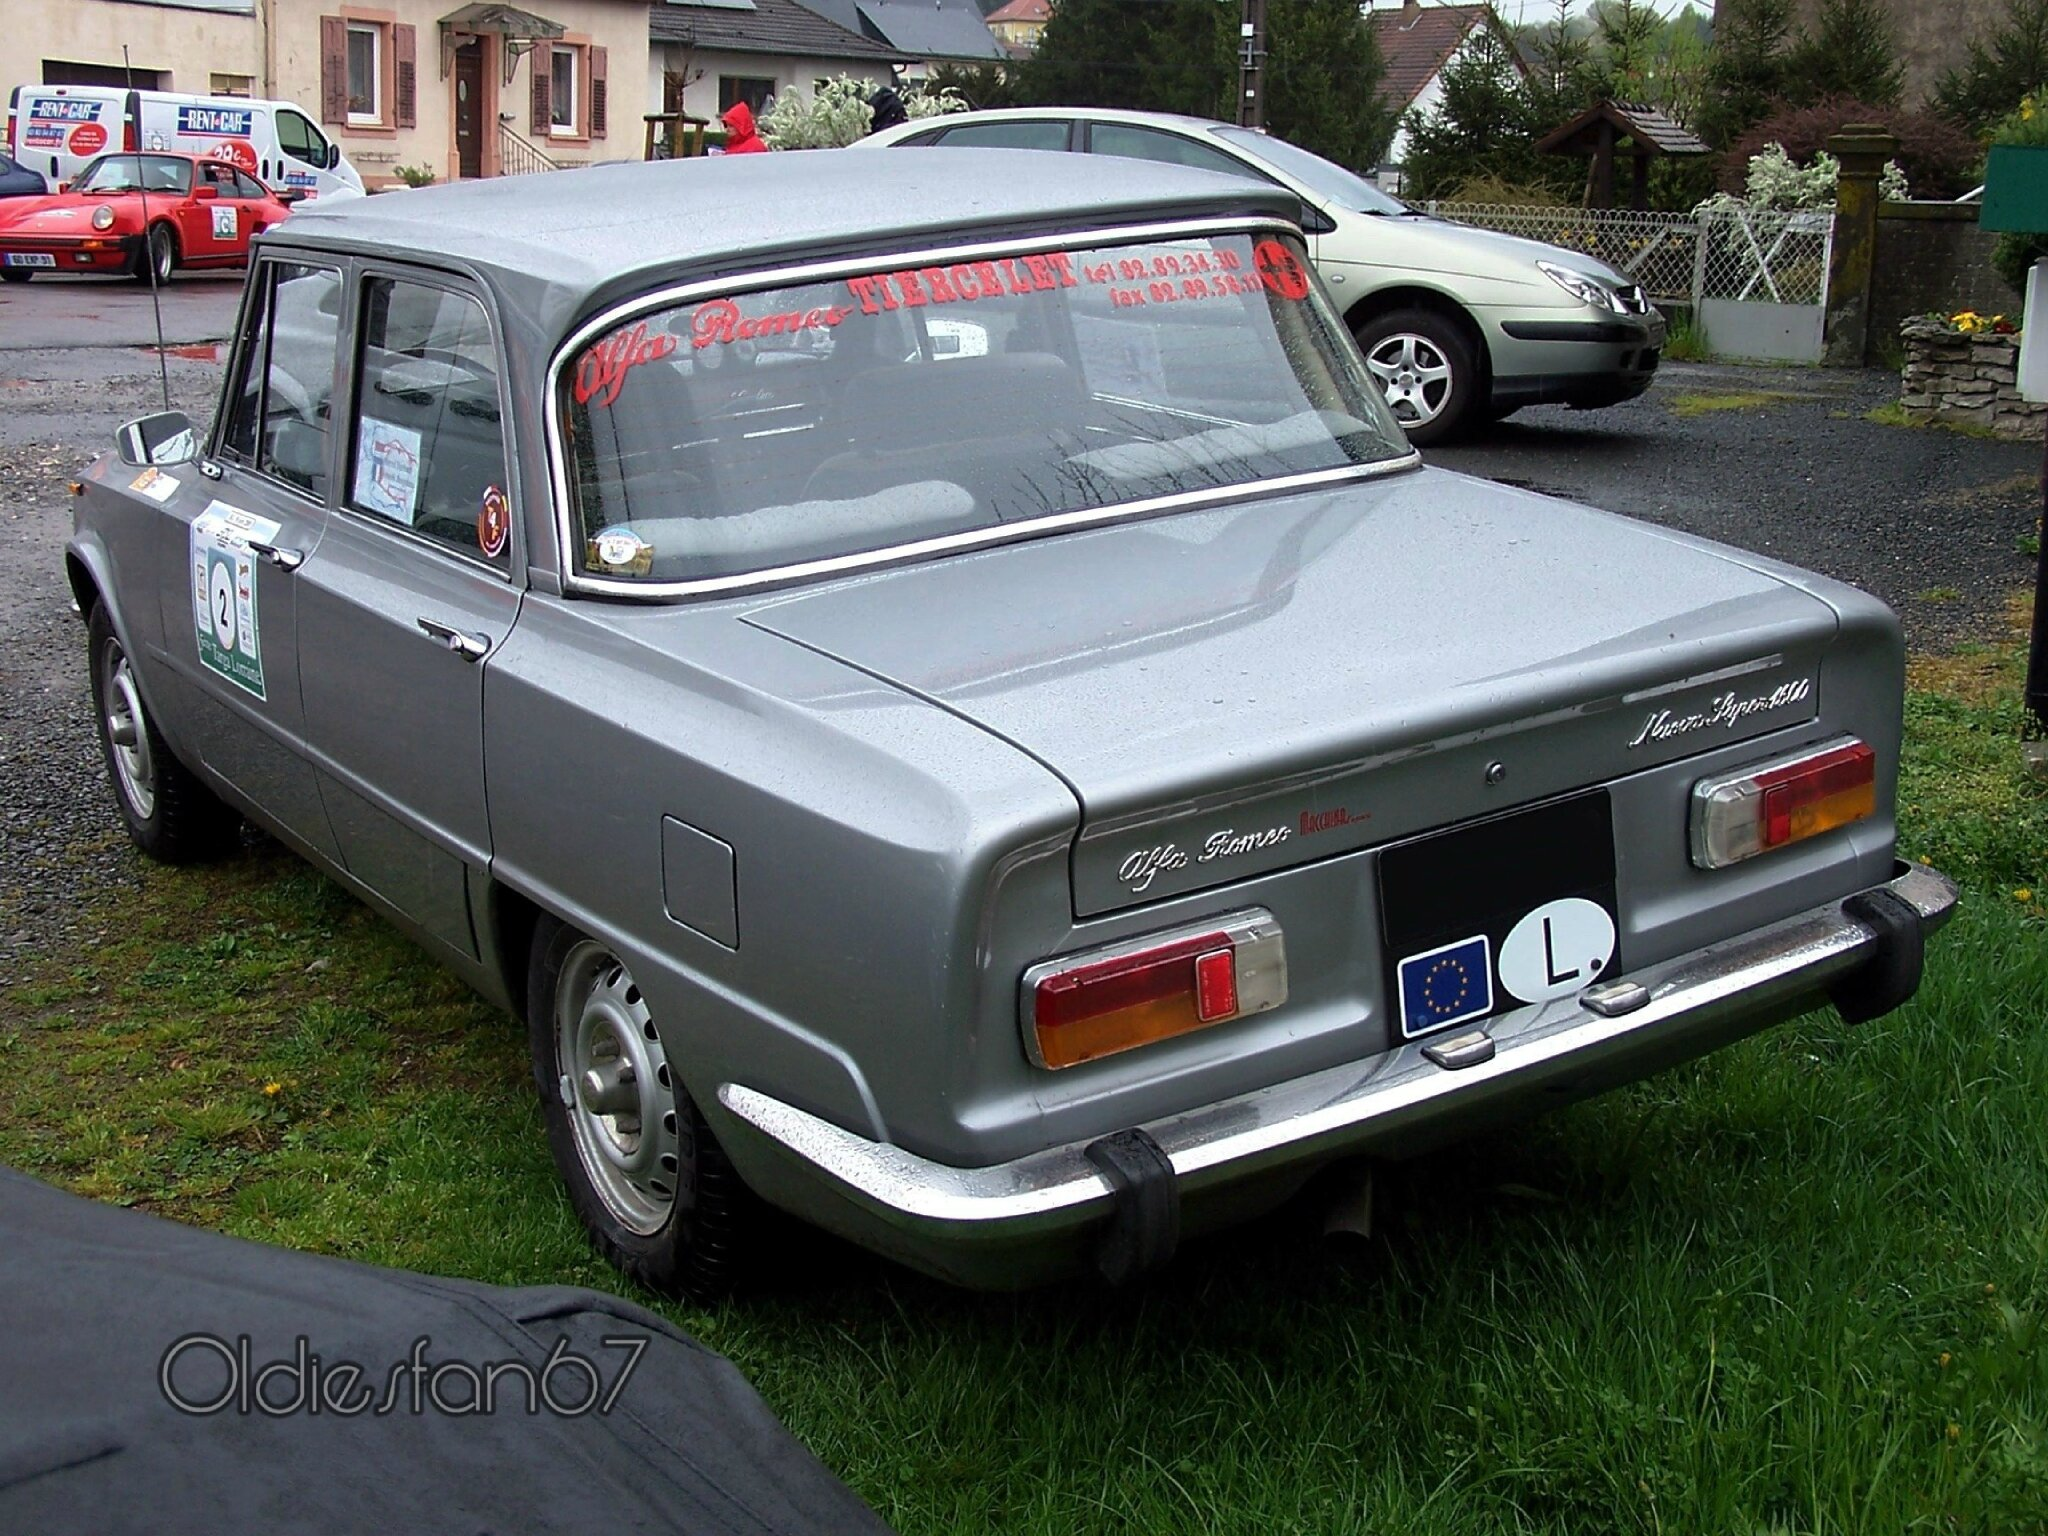 alfa romeo giulia nuova 1600 super oldiesfan67 mon blog auto. Black Bedroom Furniture Sets. Home Design Ideas